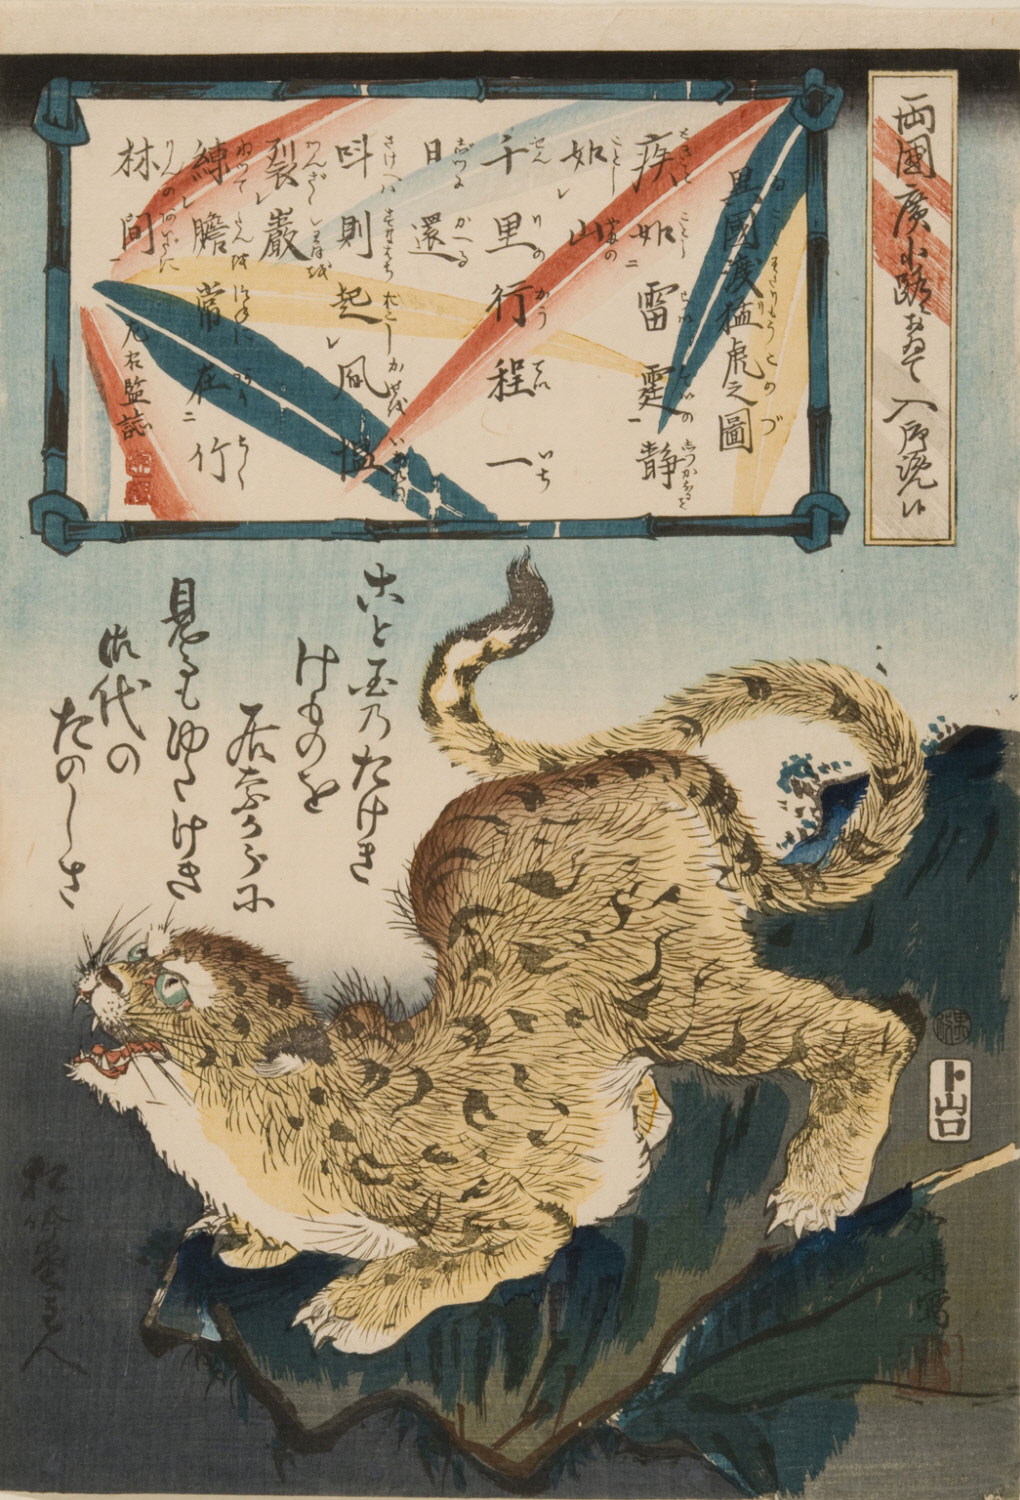 The Ferocious Tiger from Abroad, on Exhibition at Hirokoi in the Ryōgoku District